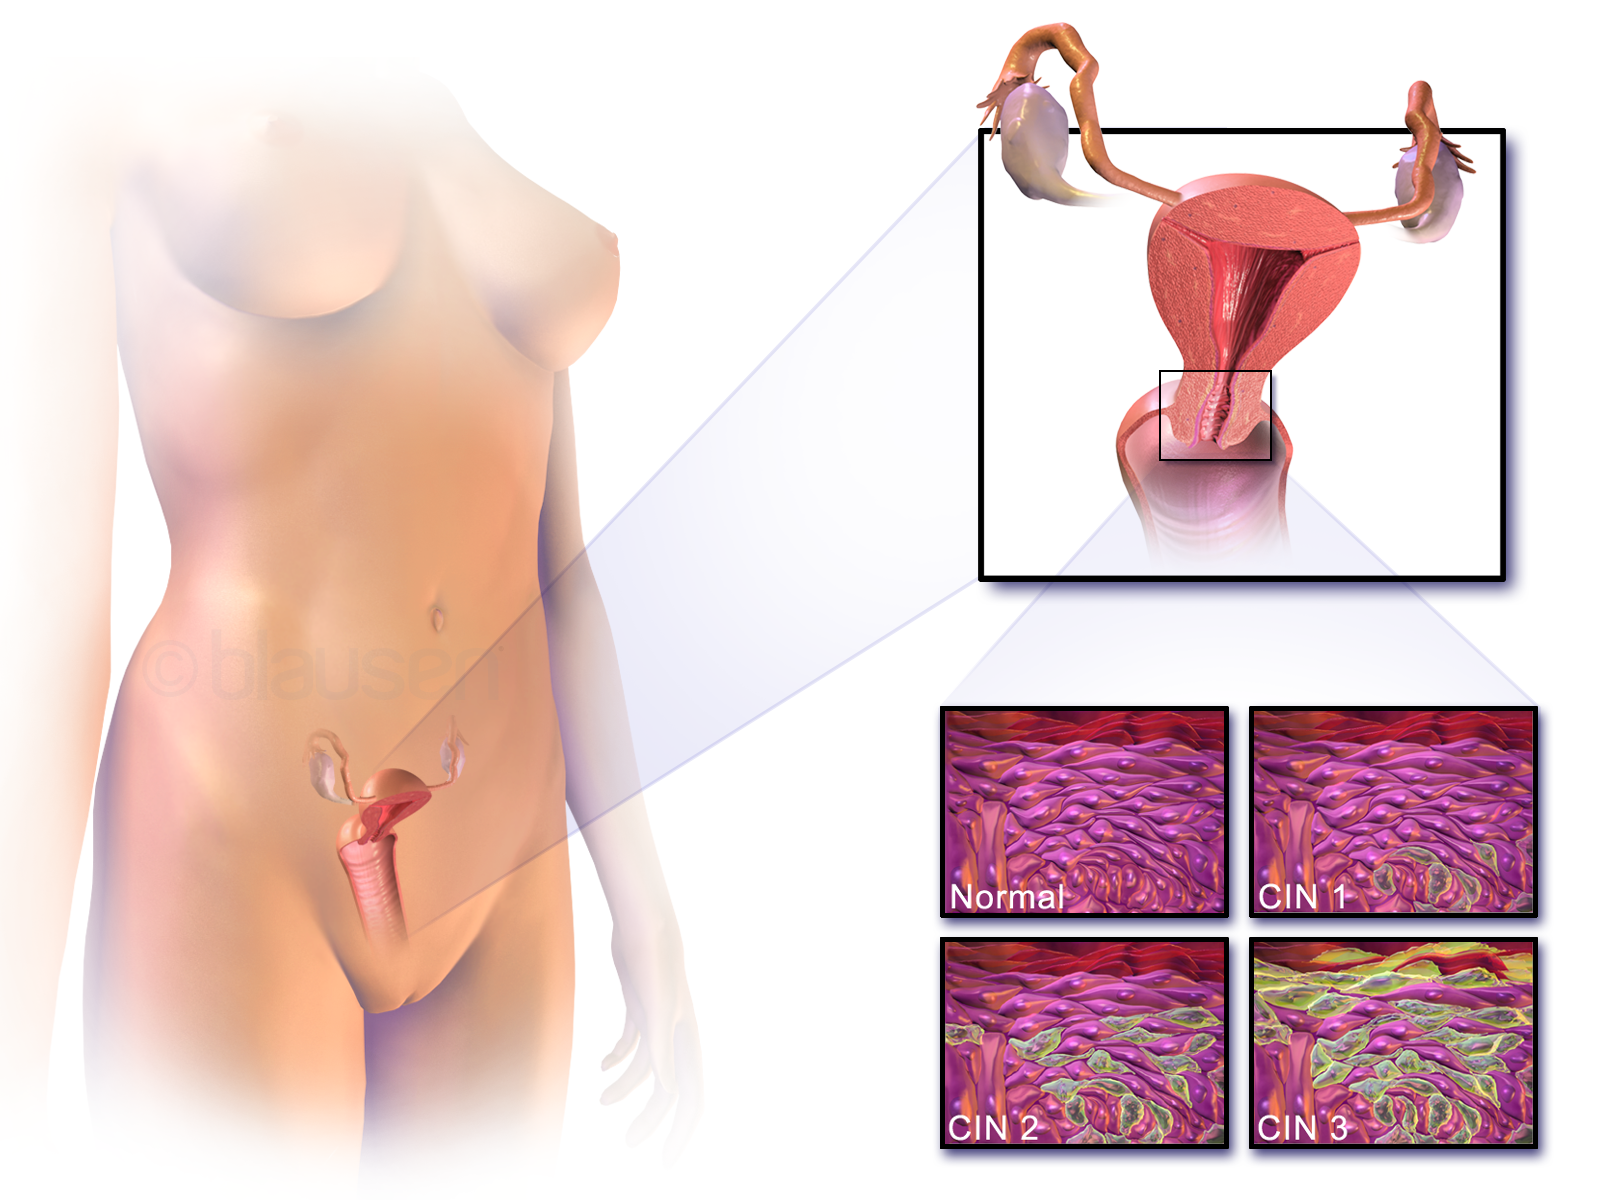 hpv definition and symptoms din pastile papiloame